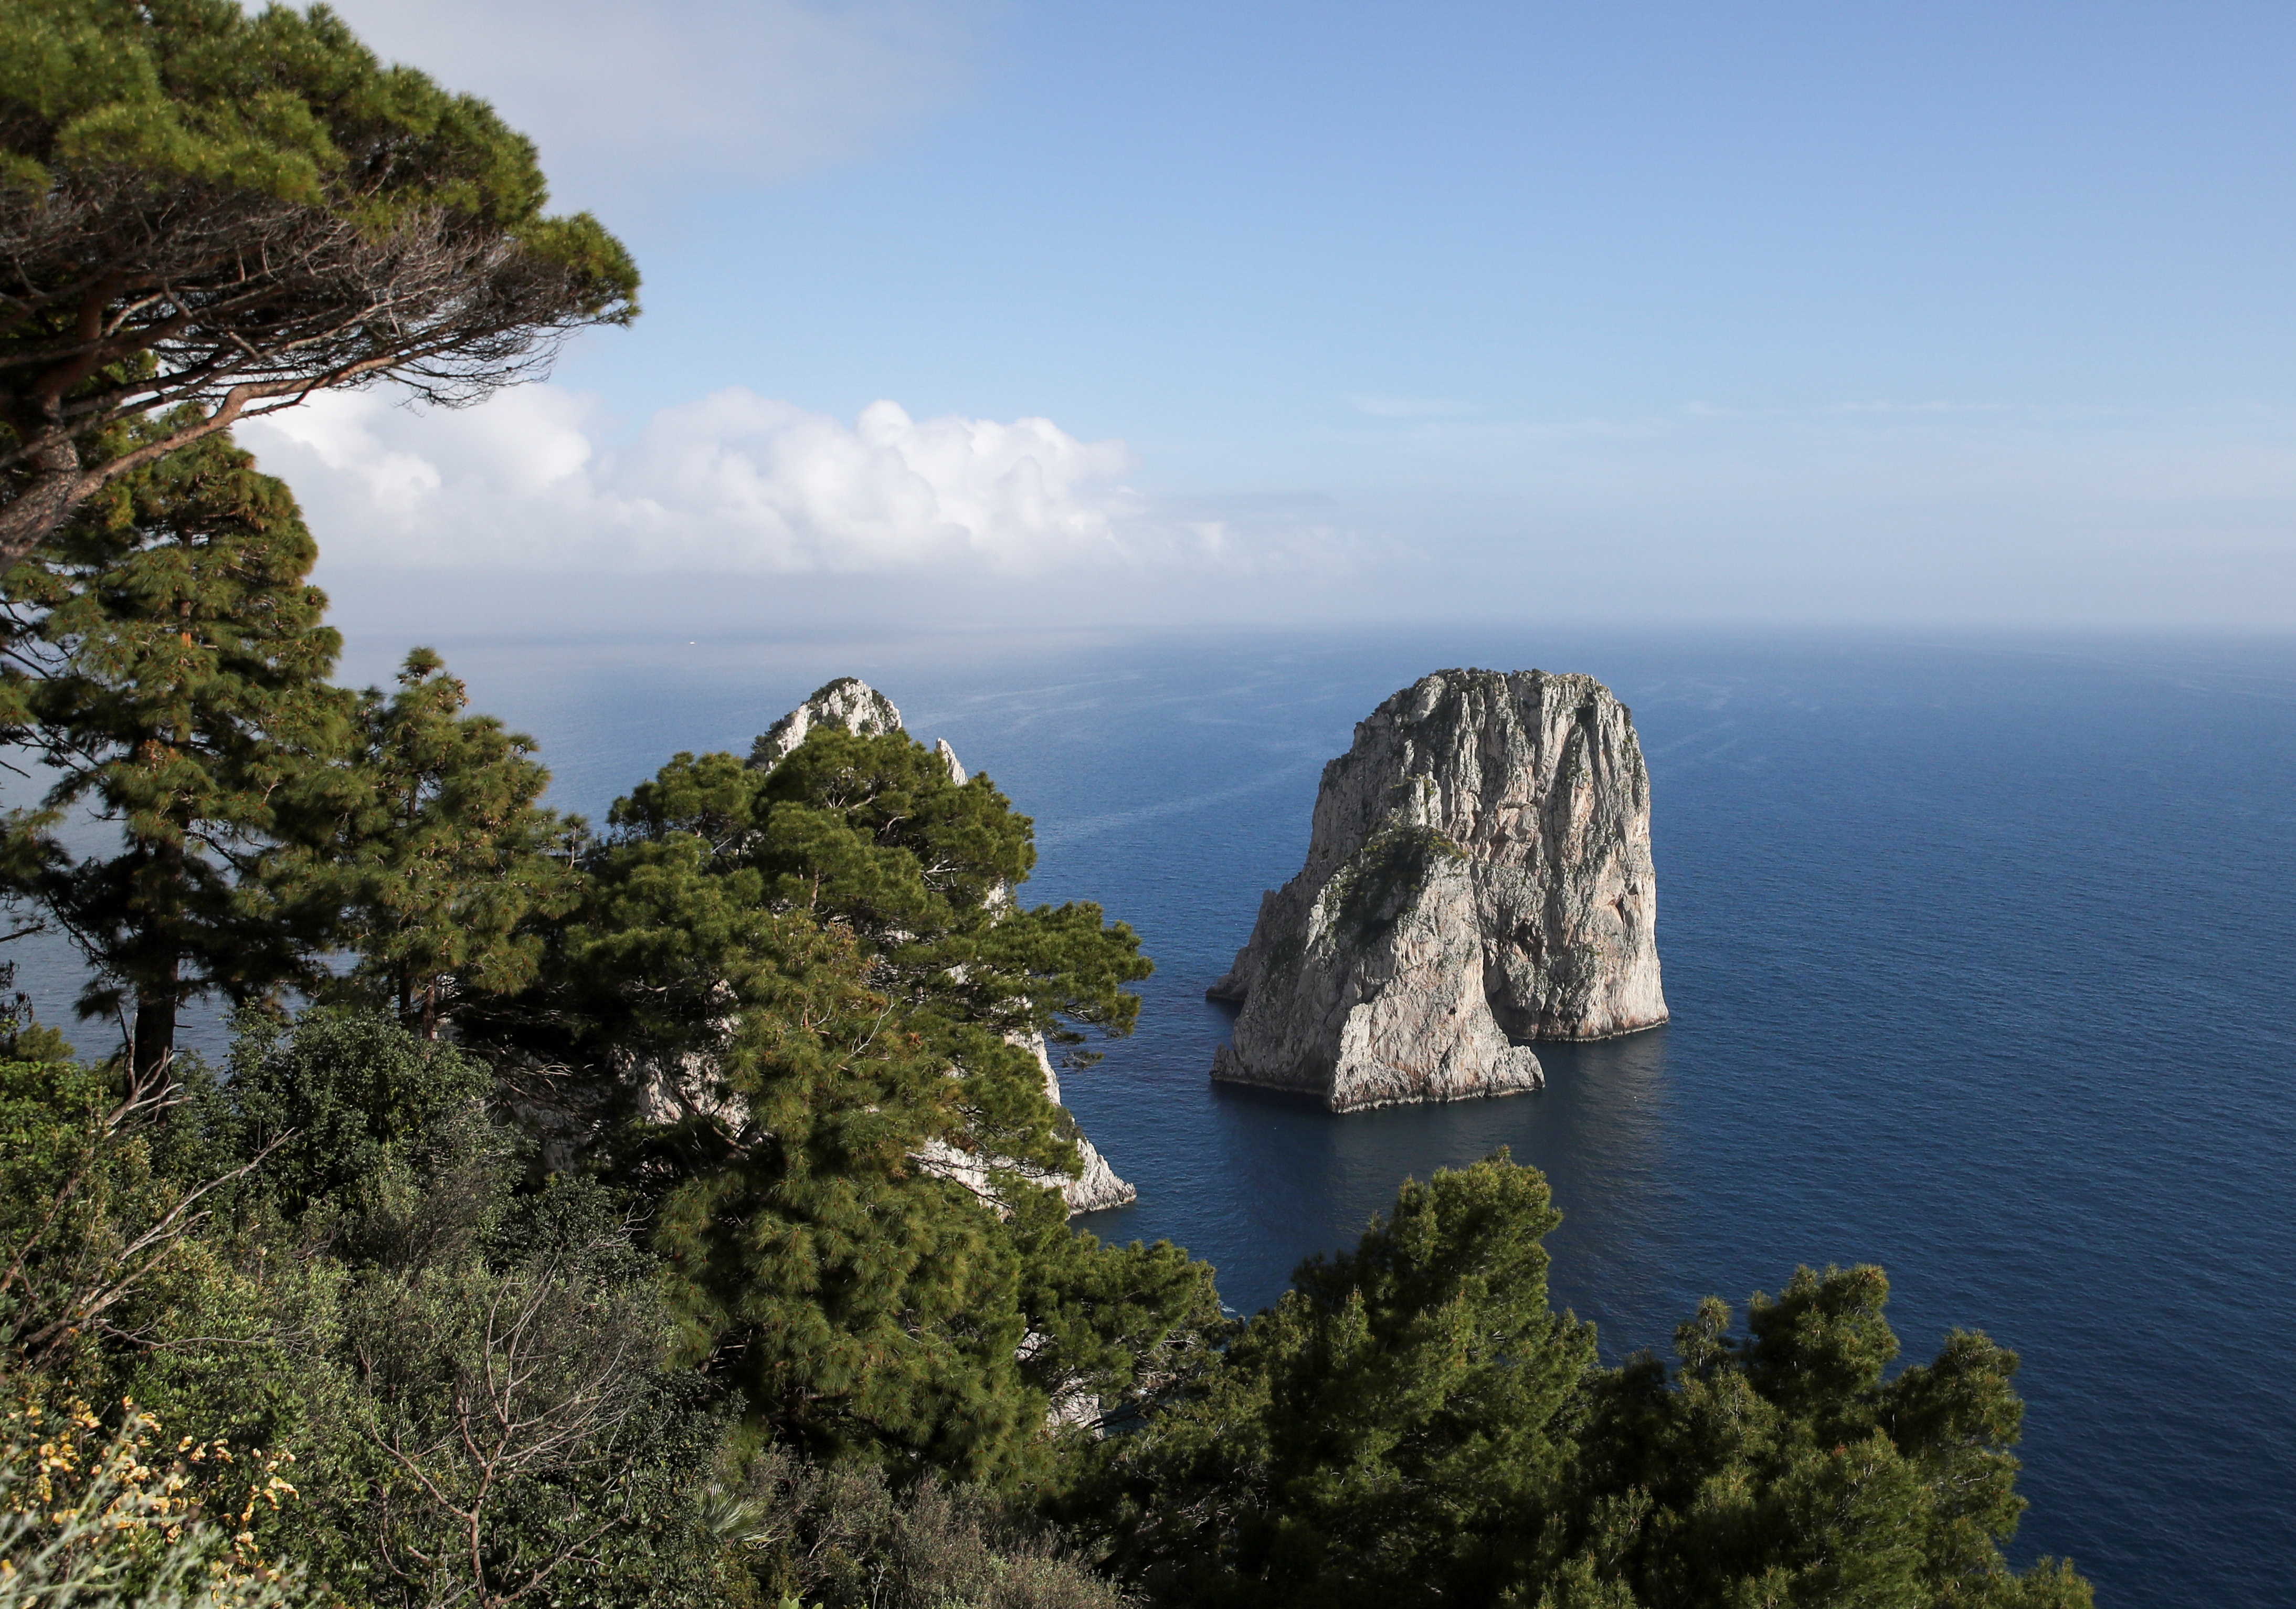 A view of the Faraglioni giant rocks off the coast of Capri, where the surrounding seabed has been devastated by illegal fishing of valuable shellfish known as date mussels, in Capri, Italy, April 28, 2021. Picture taken April 28, 2021. REUTERS/Yara Nardi